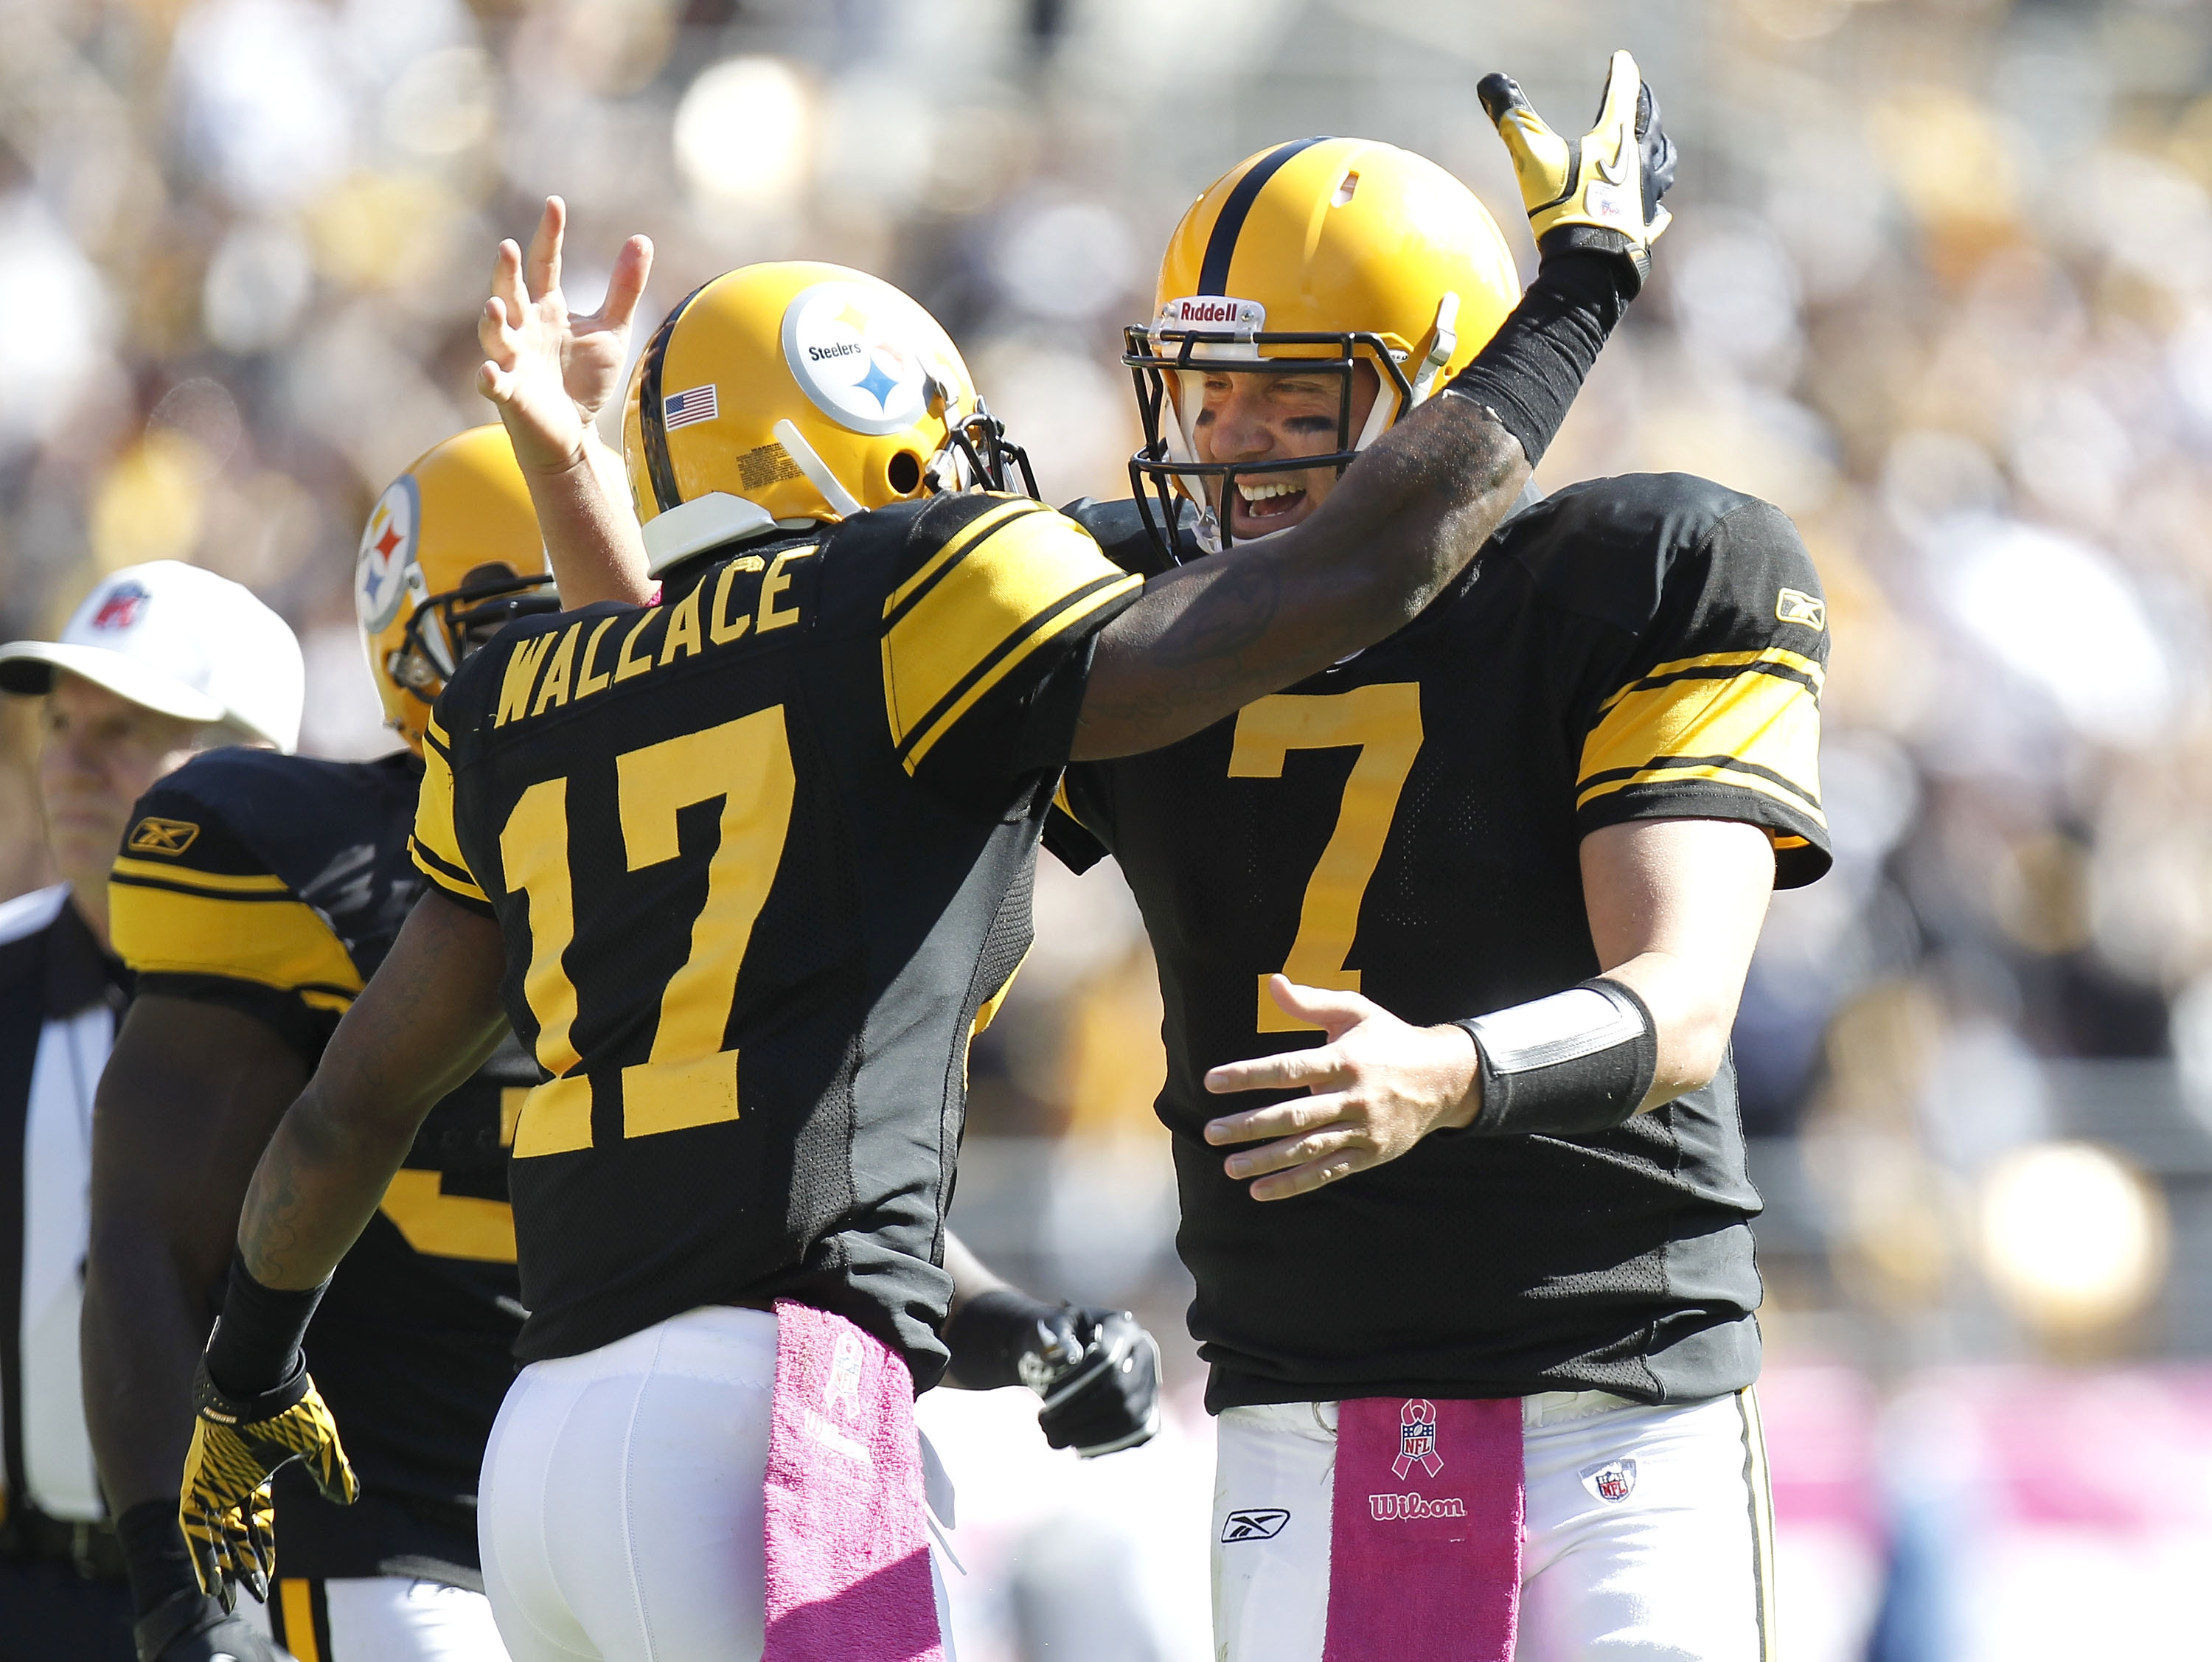 PITTSBURGH - OCTOBER 17:  Ben Roethlisberger #7 of the Pittsburgh Steelers celebrates a second quarter touchdown pass with Mike Wallace while playing the Cleveland Browns on October 17, 2010 at Heinz Field in Pittsburgh, Pennsylvania.  (Photo by Gregory S